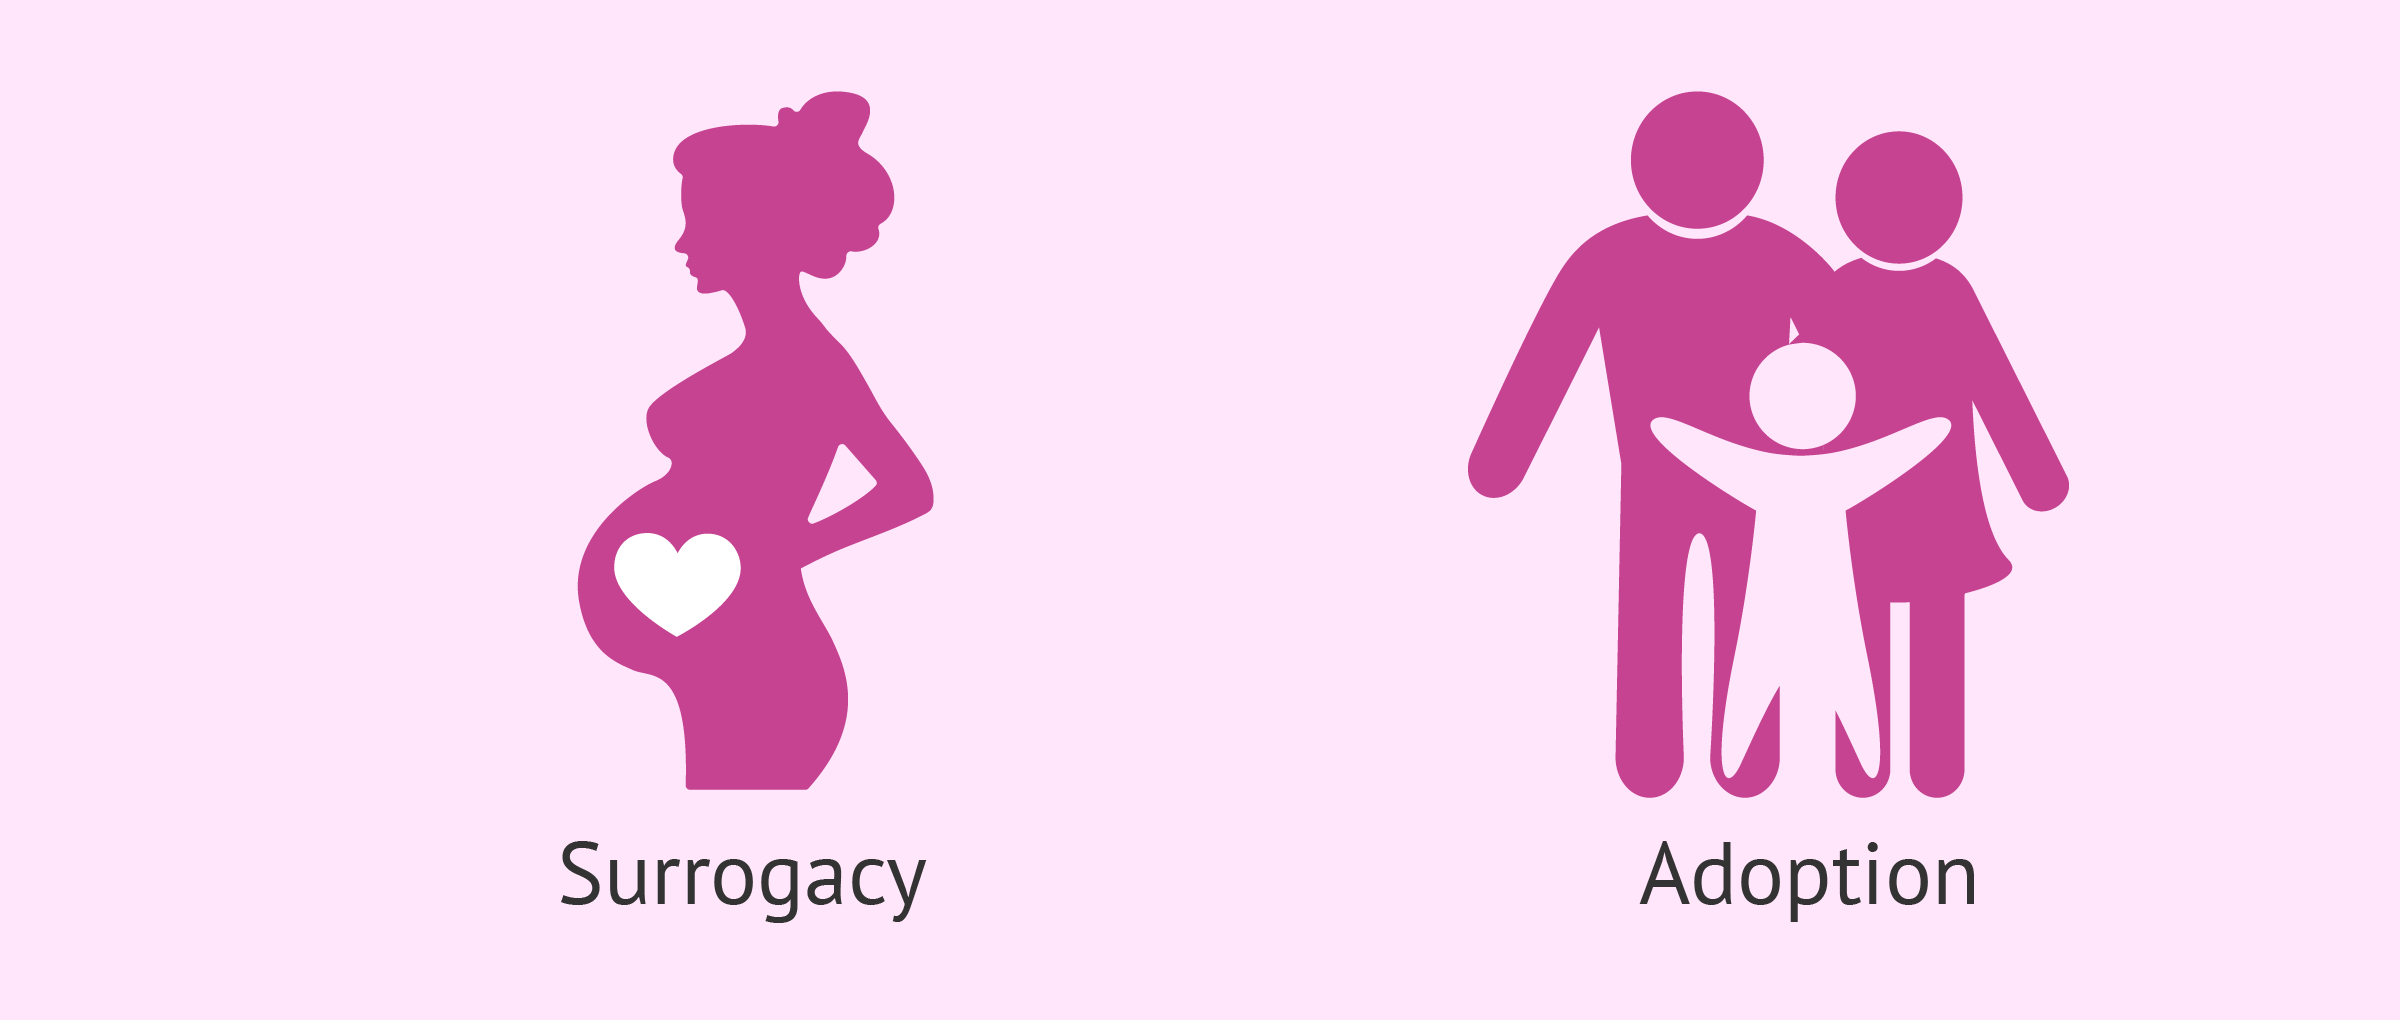 surrogacy and adoption